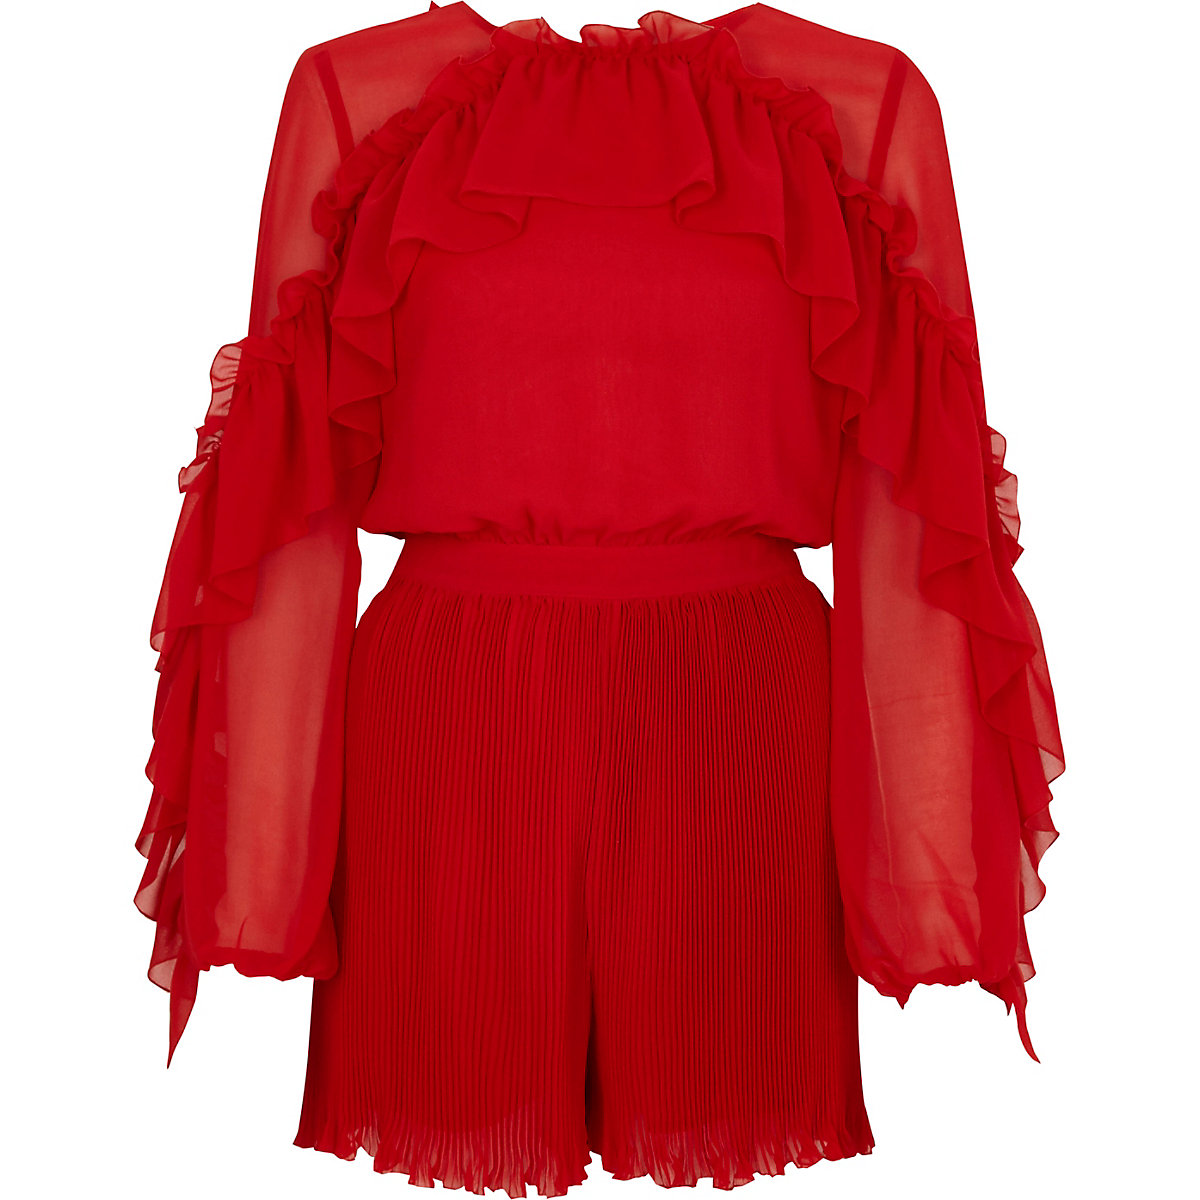 Red chiffon frill pleated playsuit